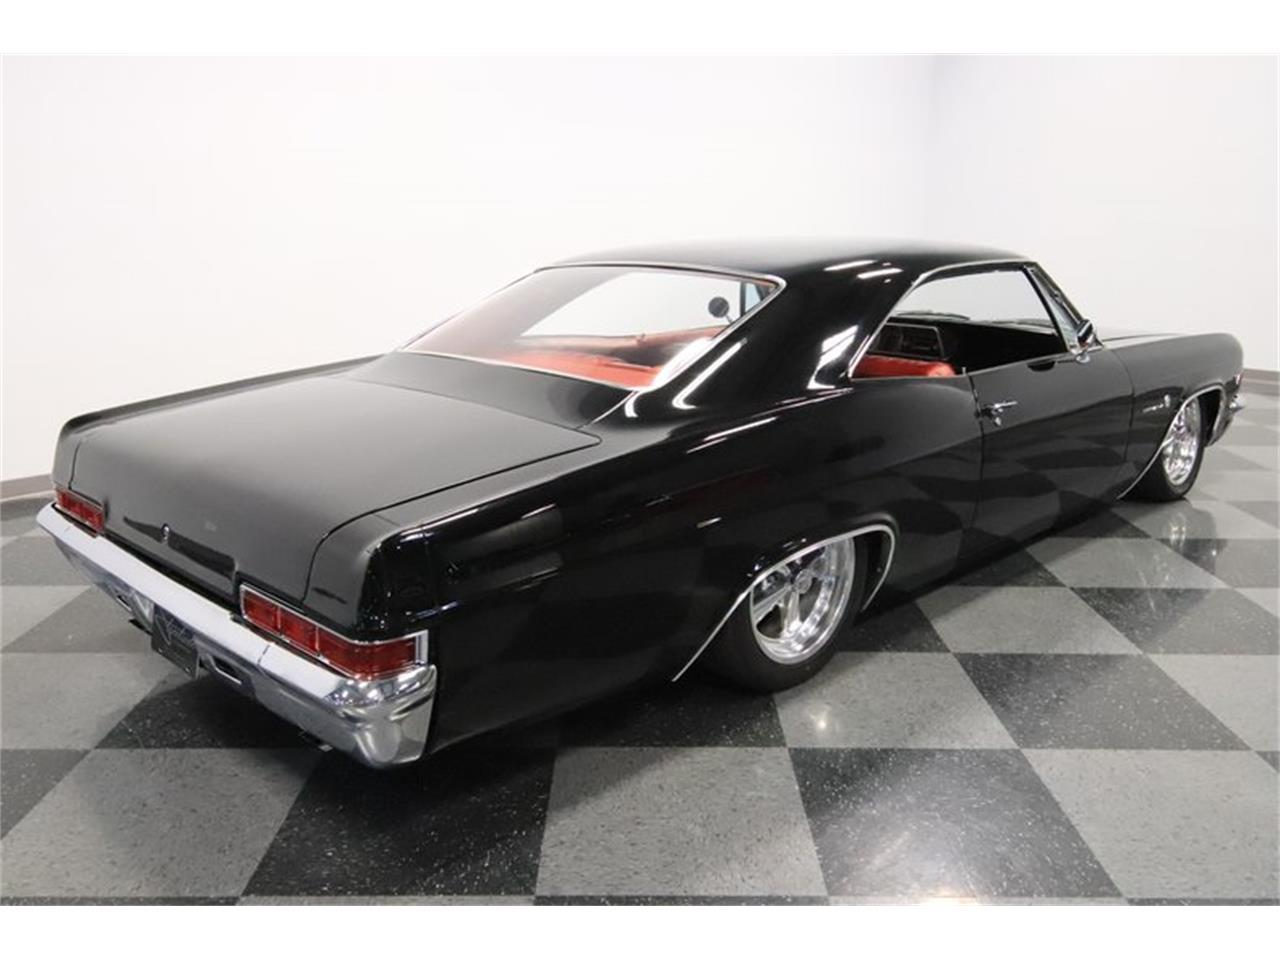 Large Picture of 1966 Chevrolet Impala located in Arizona - $52,995.00 Offered by Streetside Classics - Phoenix - Q2EF